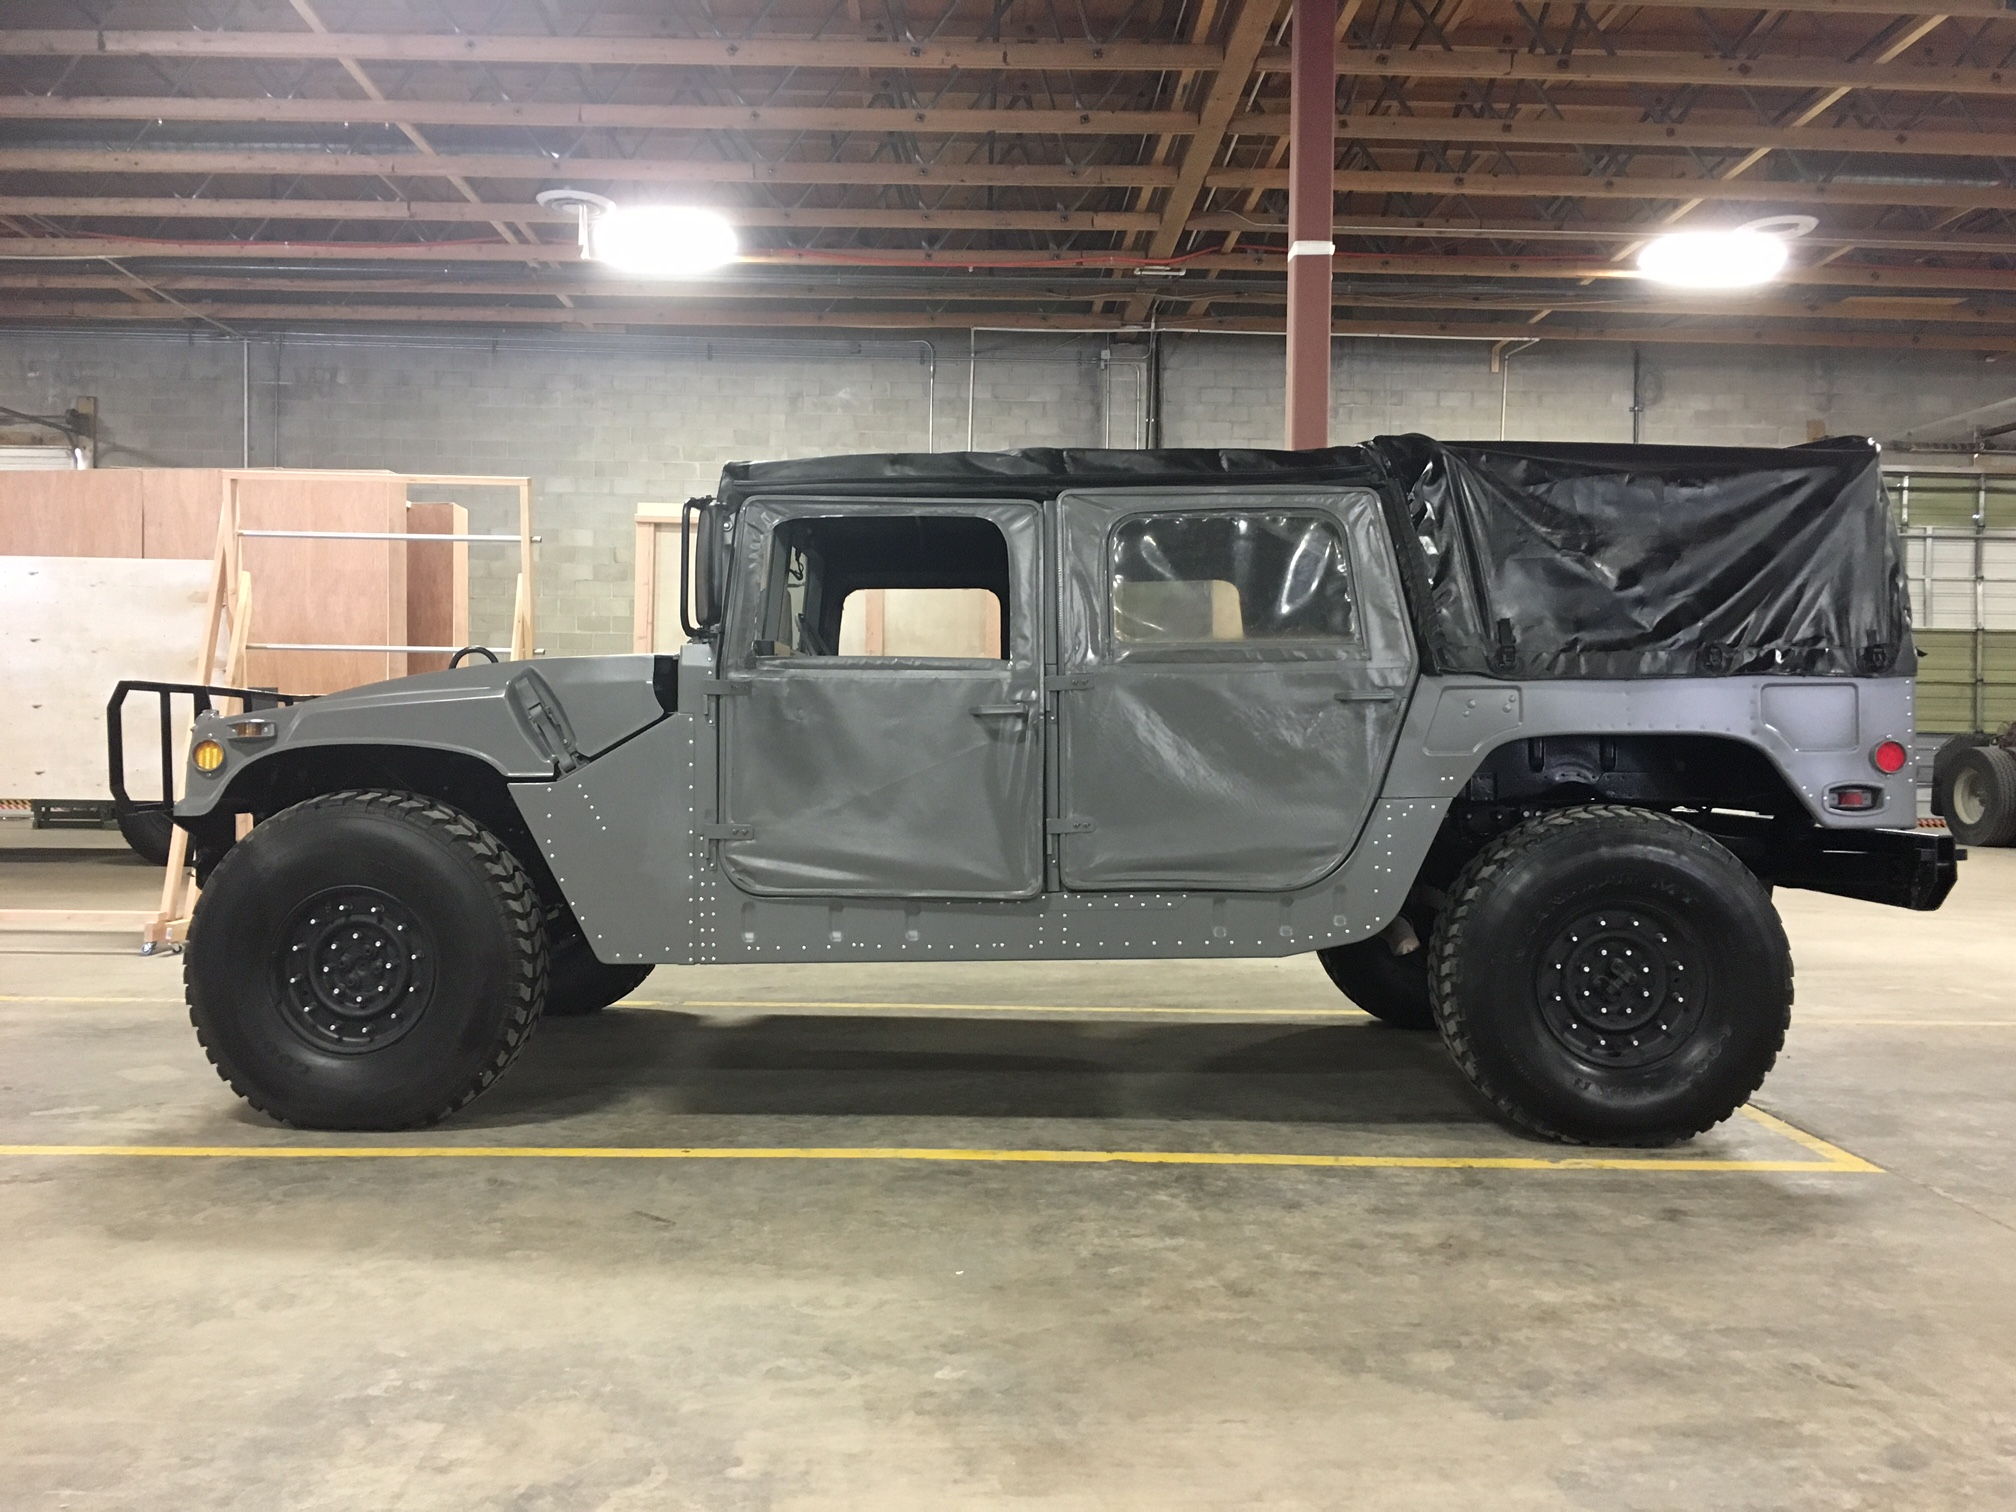 Hummers For Sale >> Plan B Supply 6x6 Military Disaster Trucks and Emergency Gear | Gray_hummer.jpeg